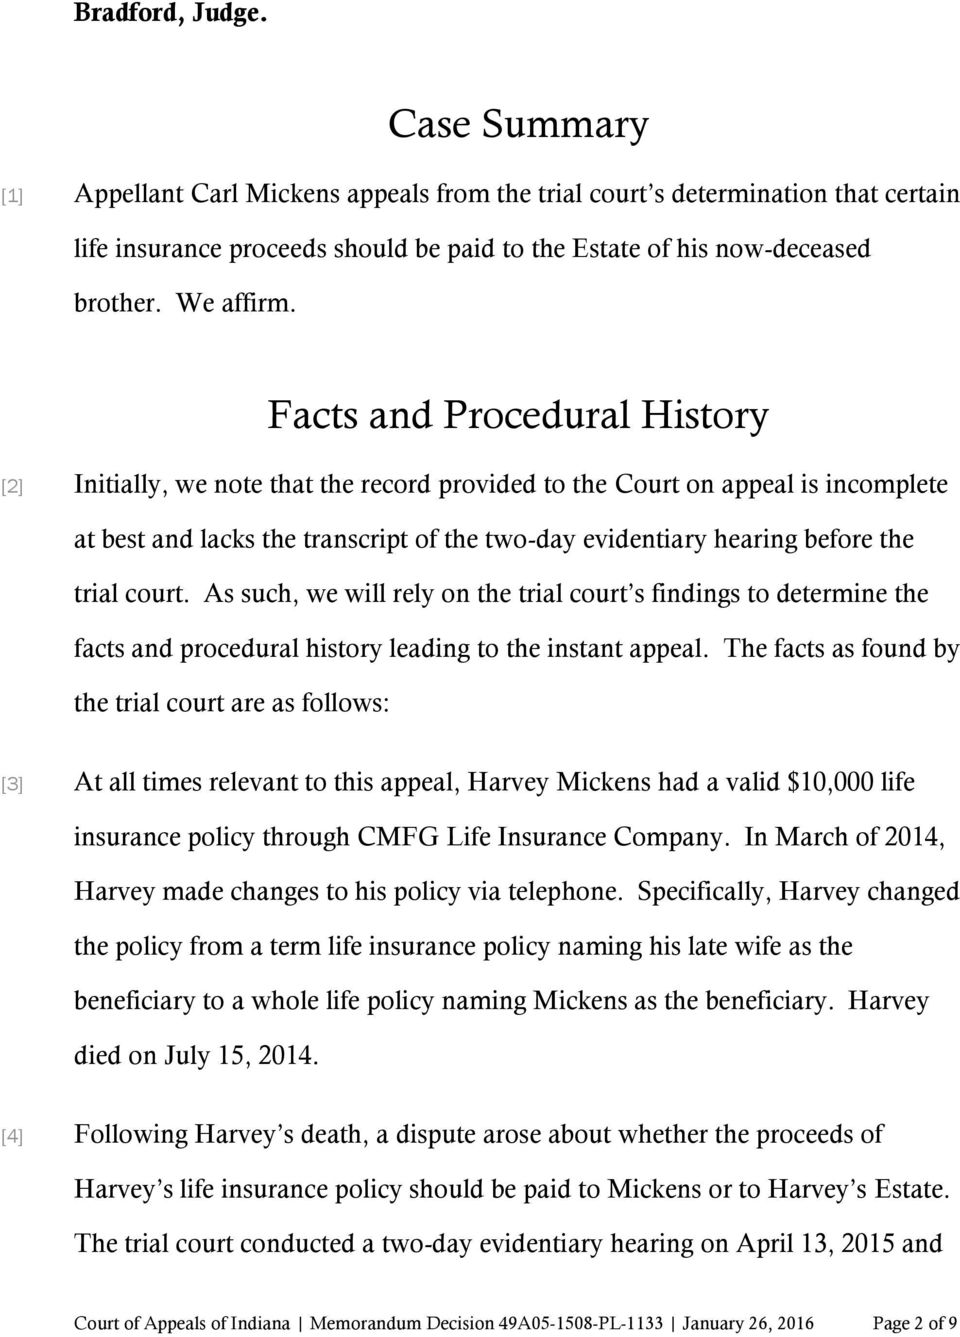 Facts and Procedural History [2] Initially, we note that the record provided to the Court on appeal is incomplete at best and lacks the transcript of the two-day evidentiary hearing before the trial